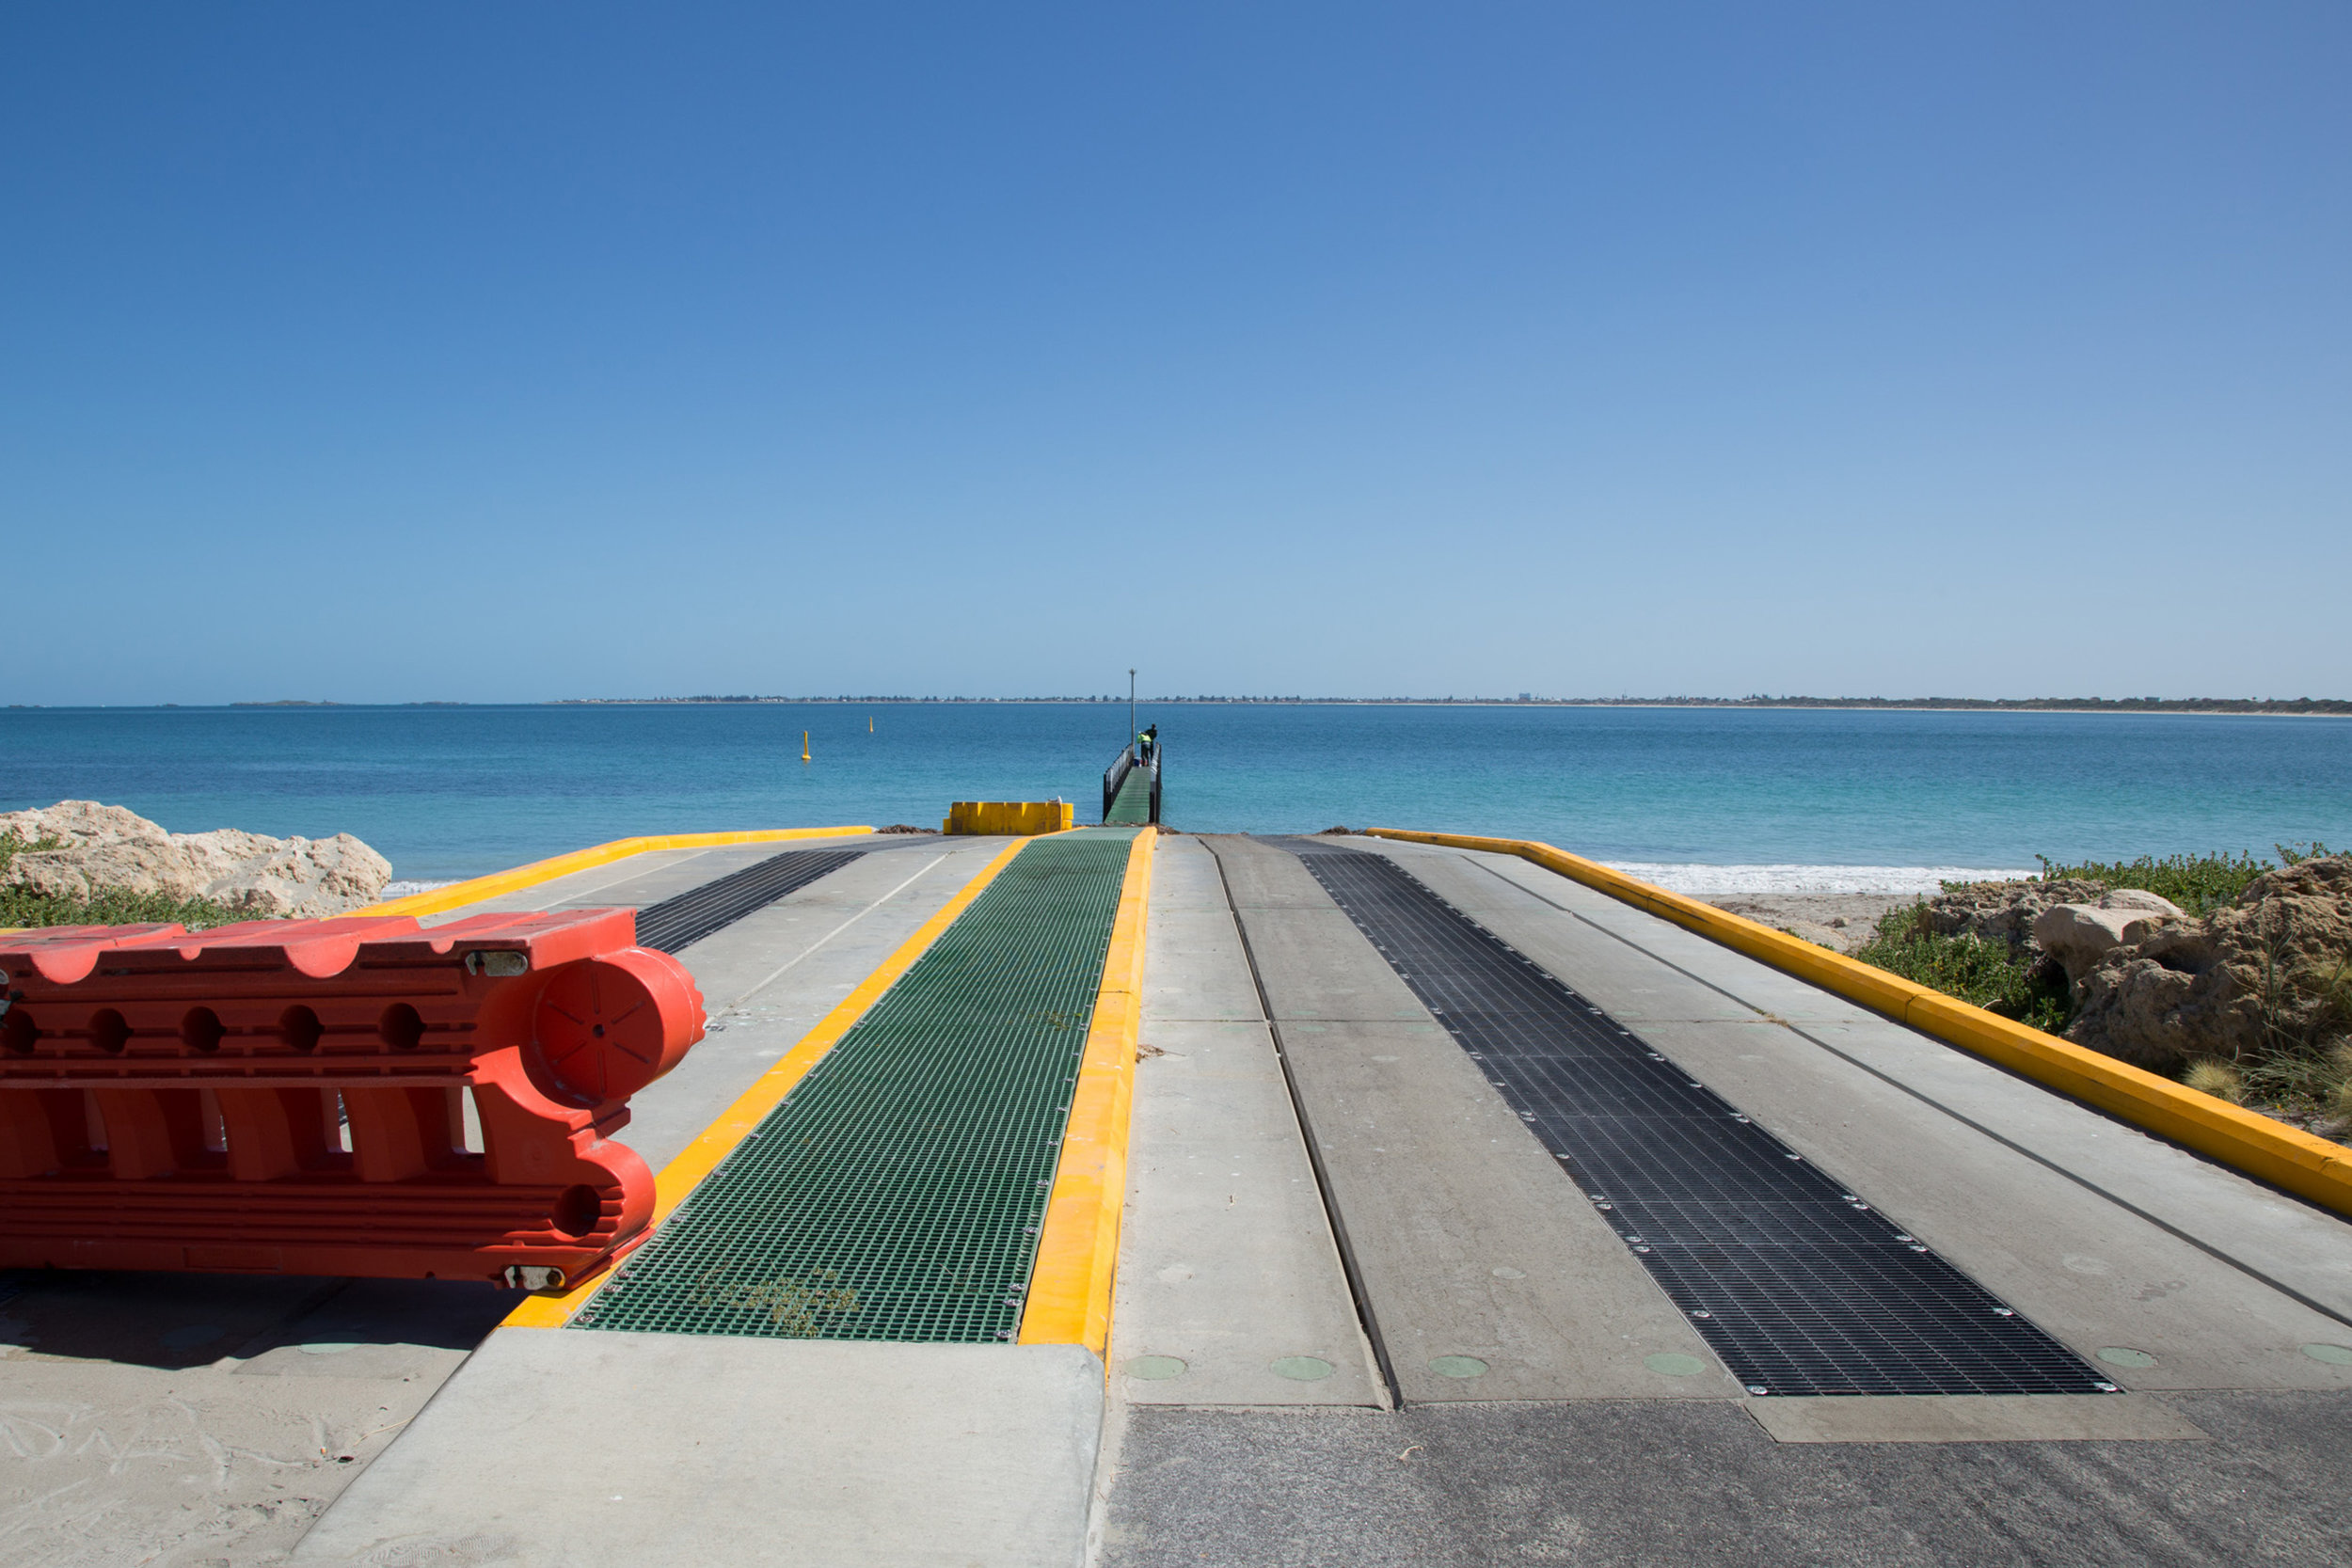 Plate 6: Boat launching ramp at the Port Kennedy resort.